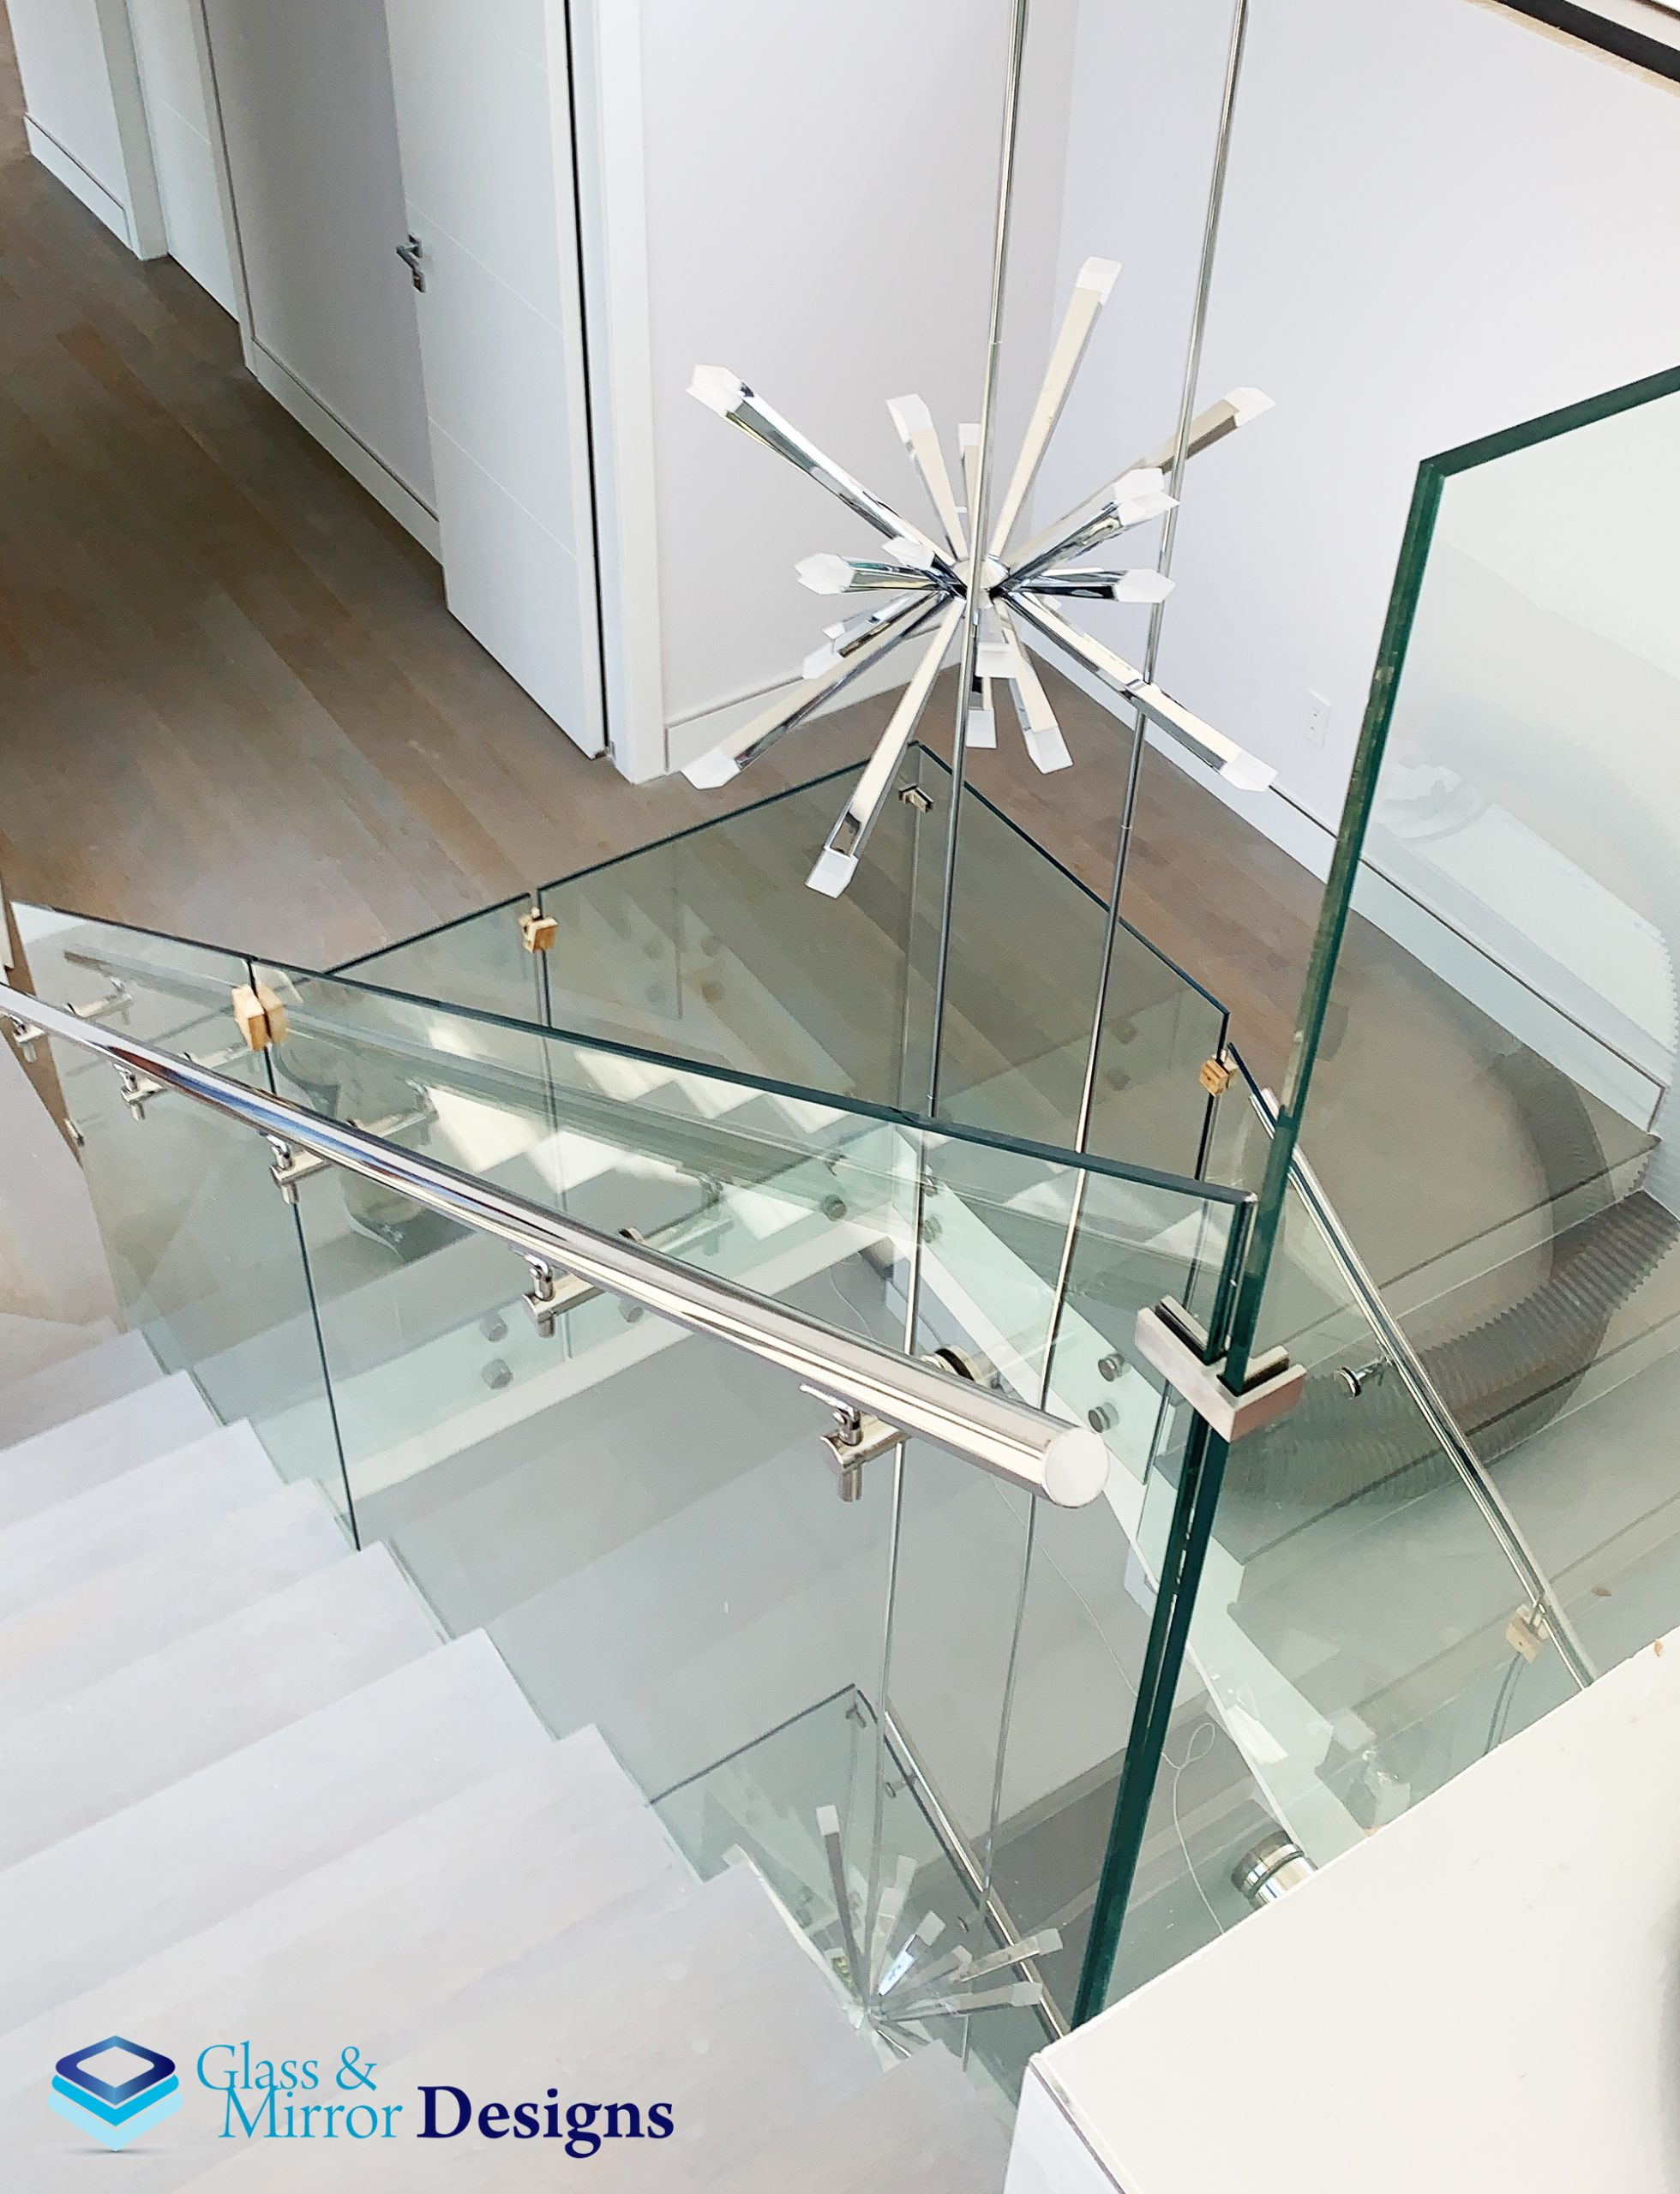 Glass Railing with Standoff System - handrail on the side ...